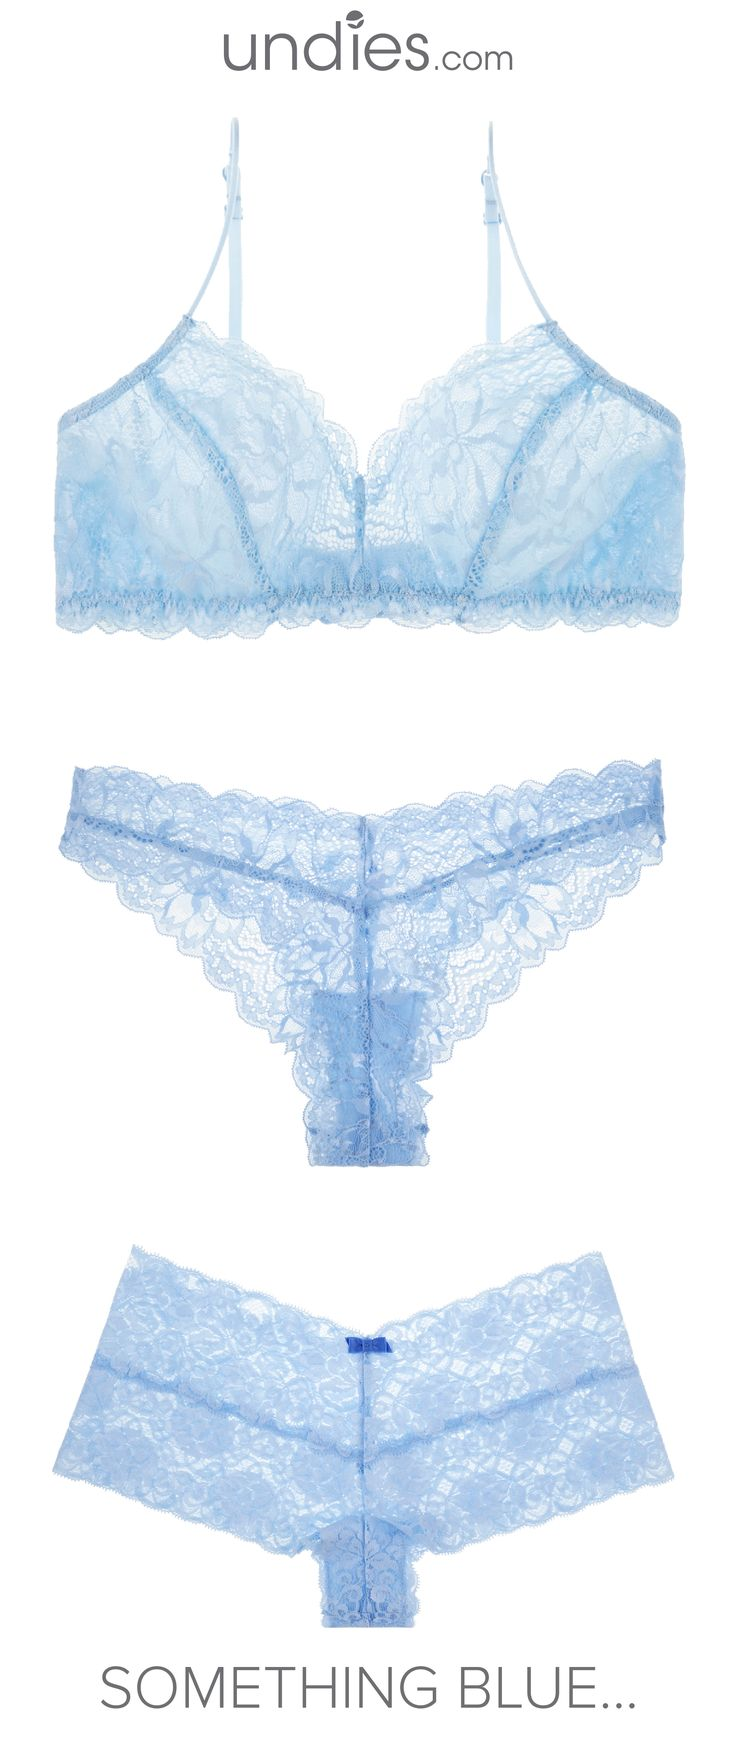 Luxe lace looks for your perfect day. The best gift for bride or bridal shower. Available in more than 15 colors and deliver in a cute gifting box. Free shipping in the US. Discover more at: undies.com